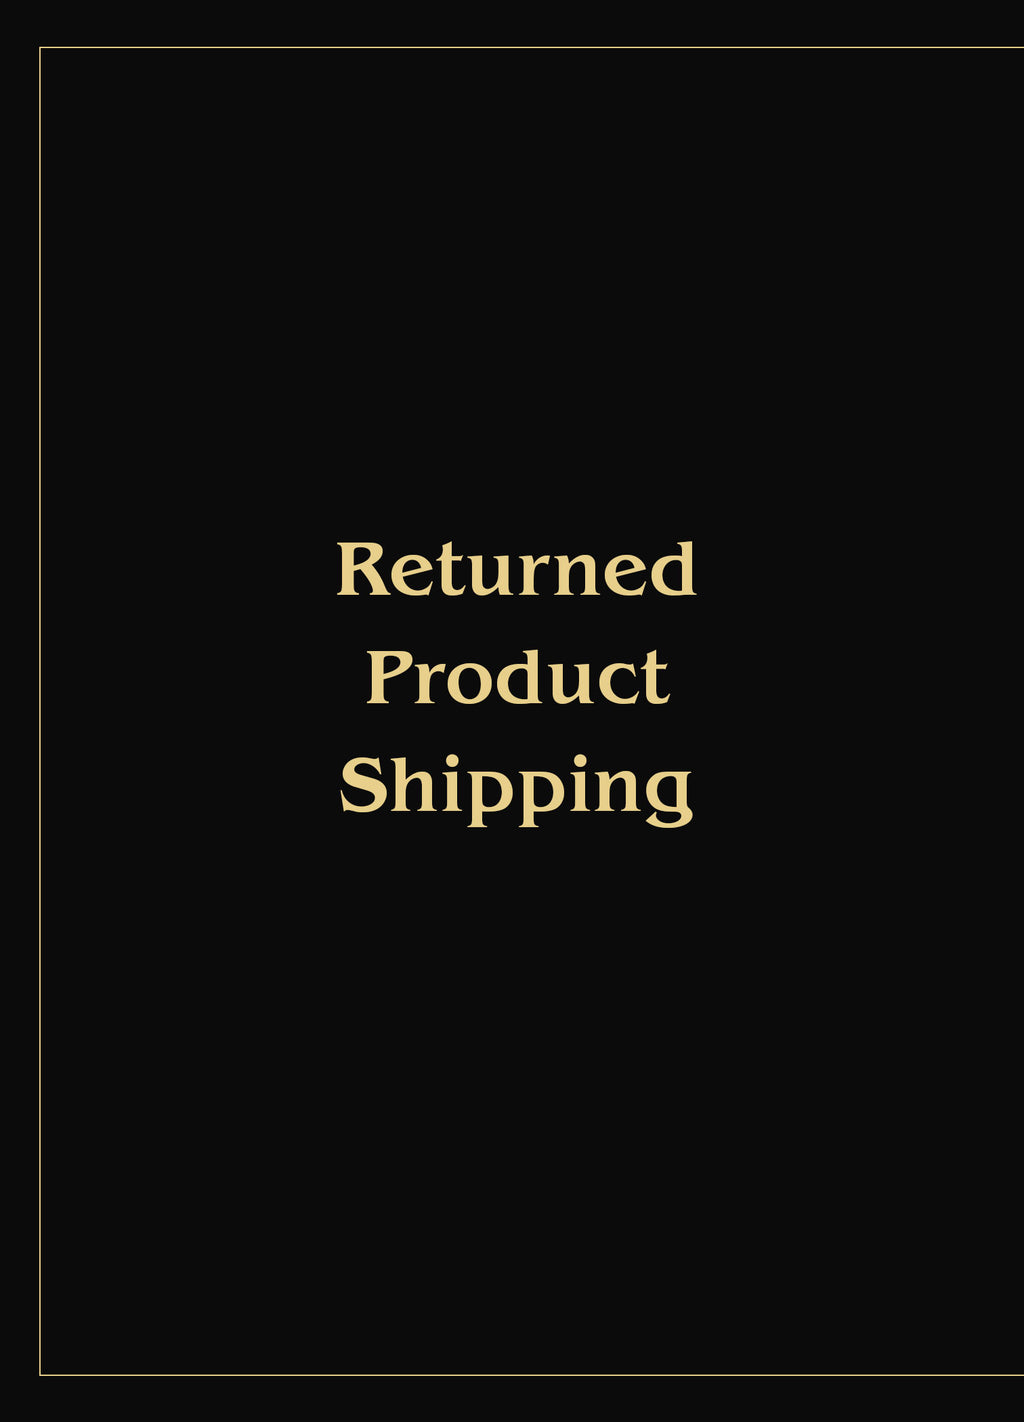 Extra product shipping